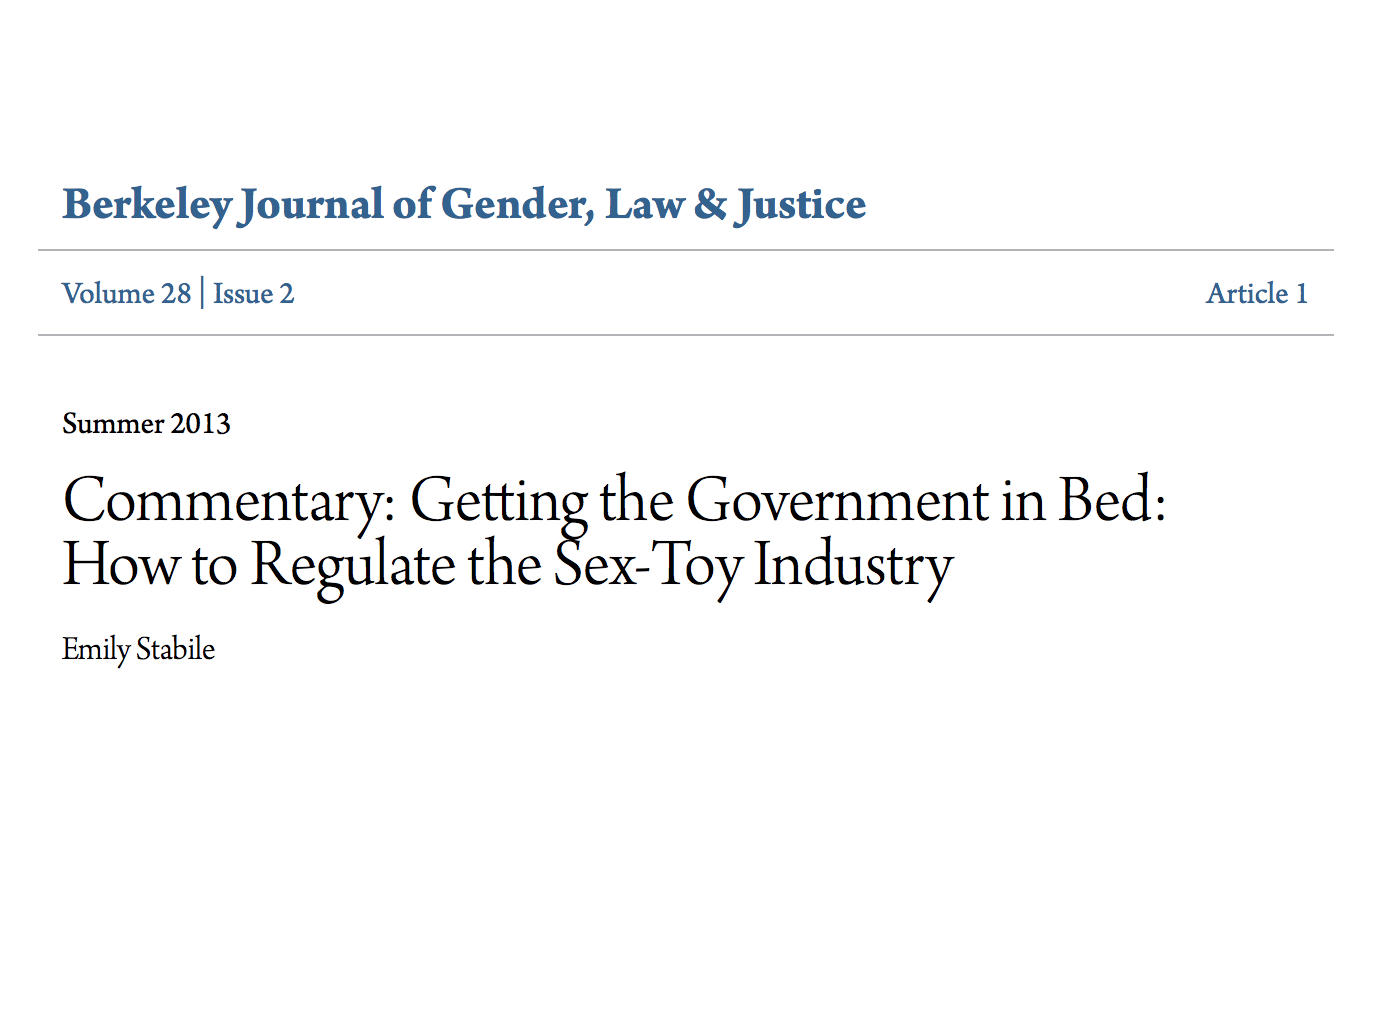 how to regulate sex toy industry